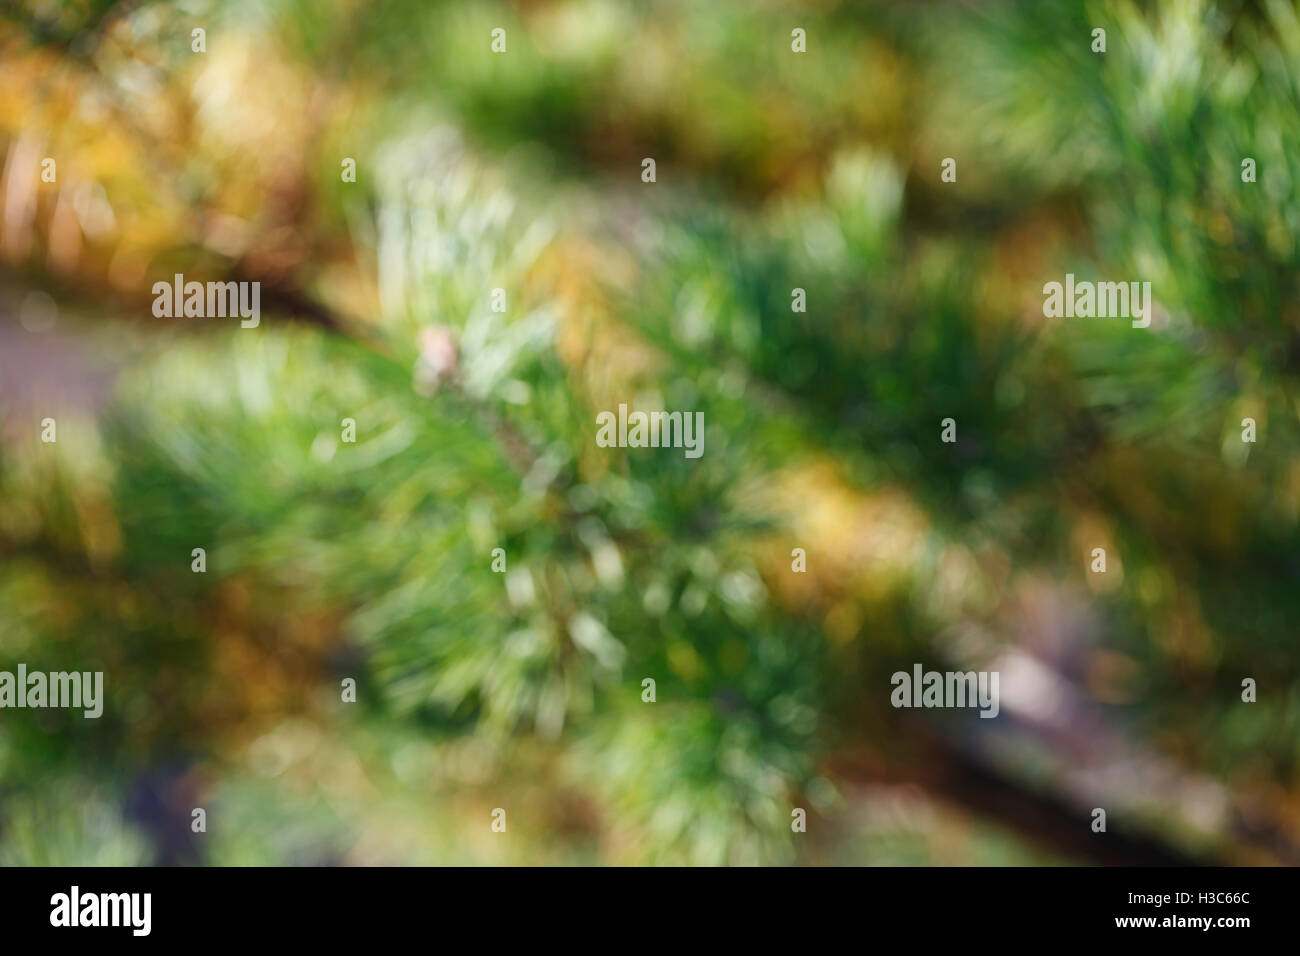 A Christmas Tree Needles Close Up Blurred Background